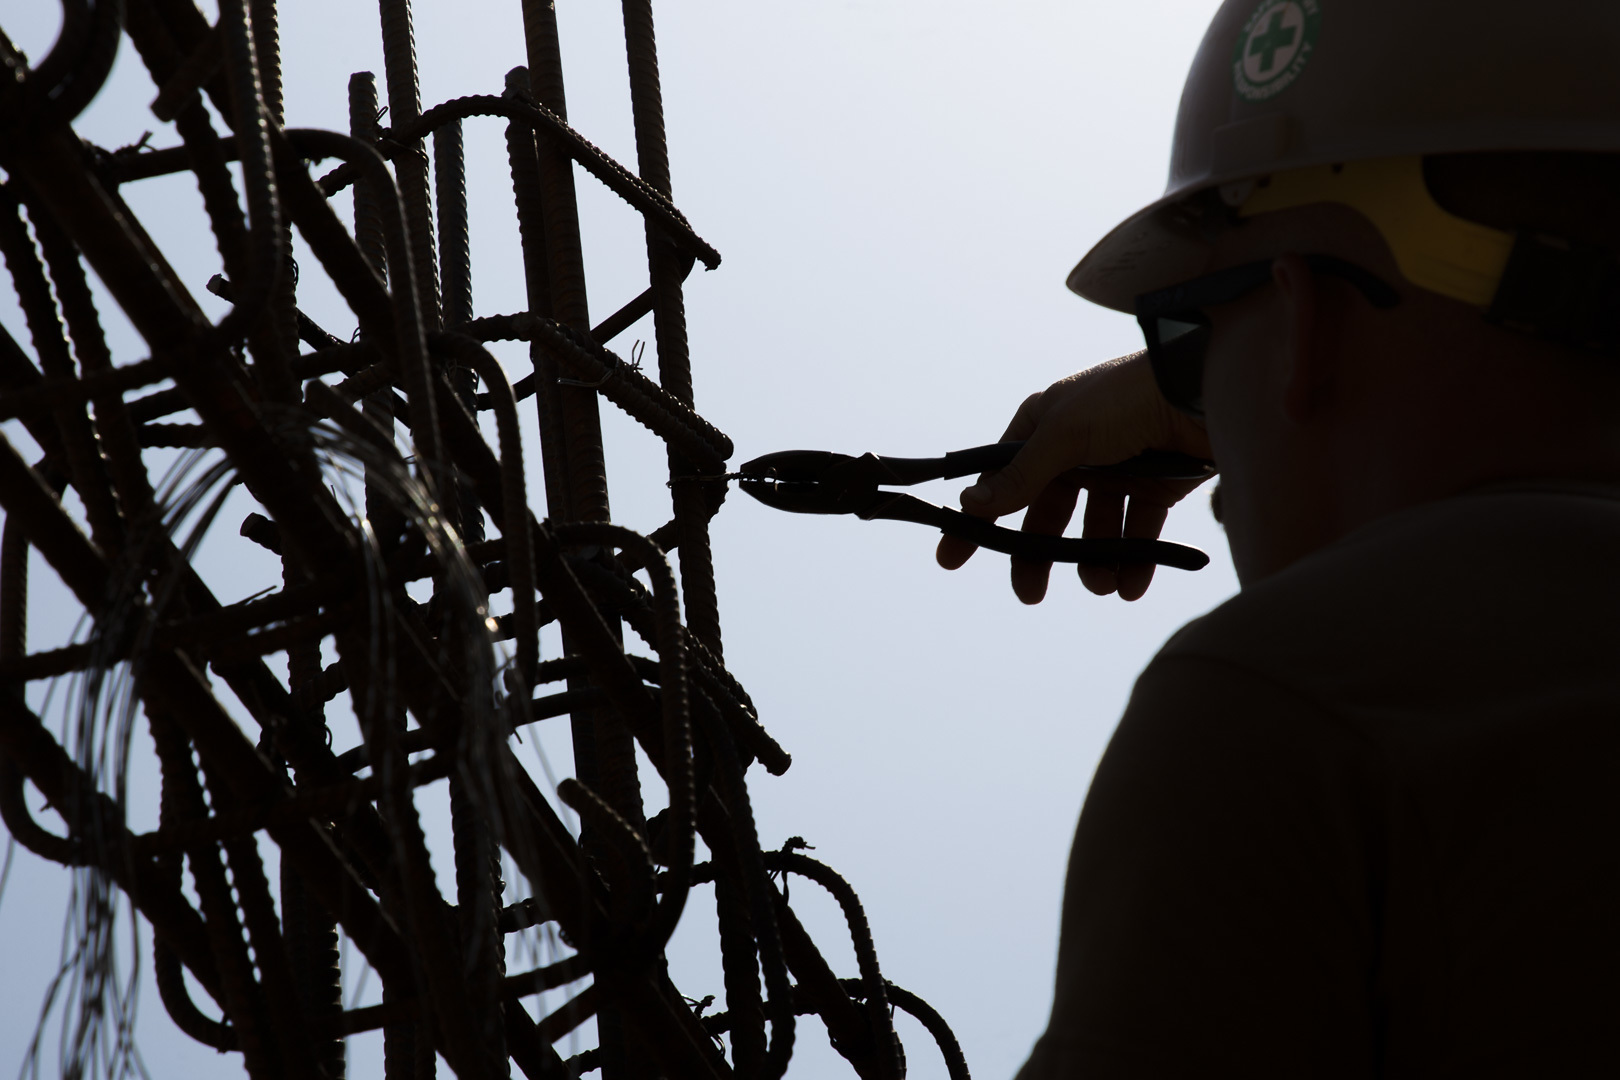 A U.S. Navy Seabee assigned to Naval Mobile Construction Battalion 1, Detachment Horn of Africa (NMCB 1 Det-HOA) ties in rebar at a construction site in Ali Oune, Djibouti, Sept. 19, 2018. NMCB-1, Det HOA is building a medical facility in Ali Oune in support of the Ministry of Health for Djibouti. (U.S. Air National Guard photo by Master Sgt. Andrew Sinclair)